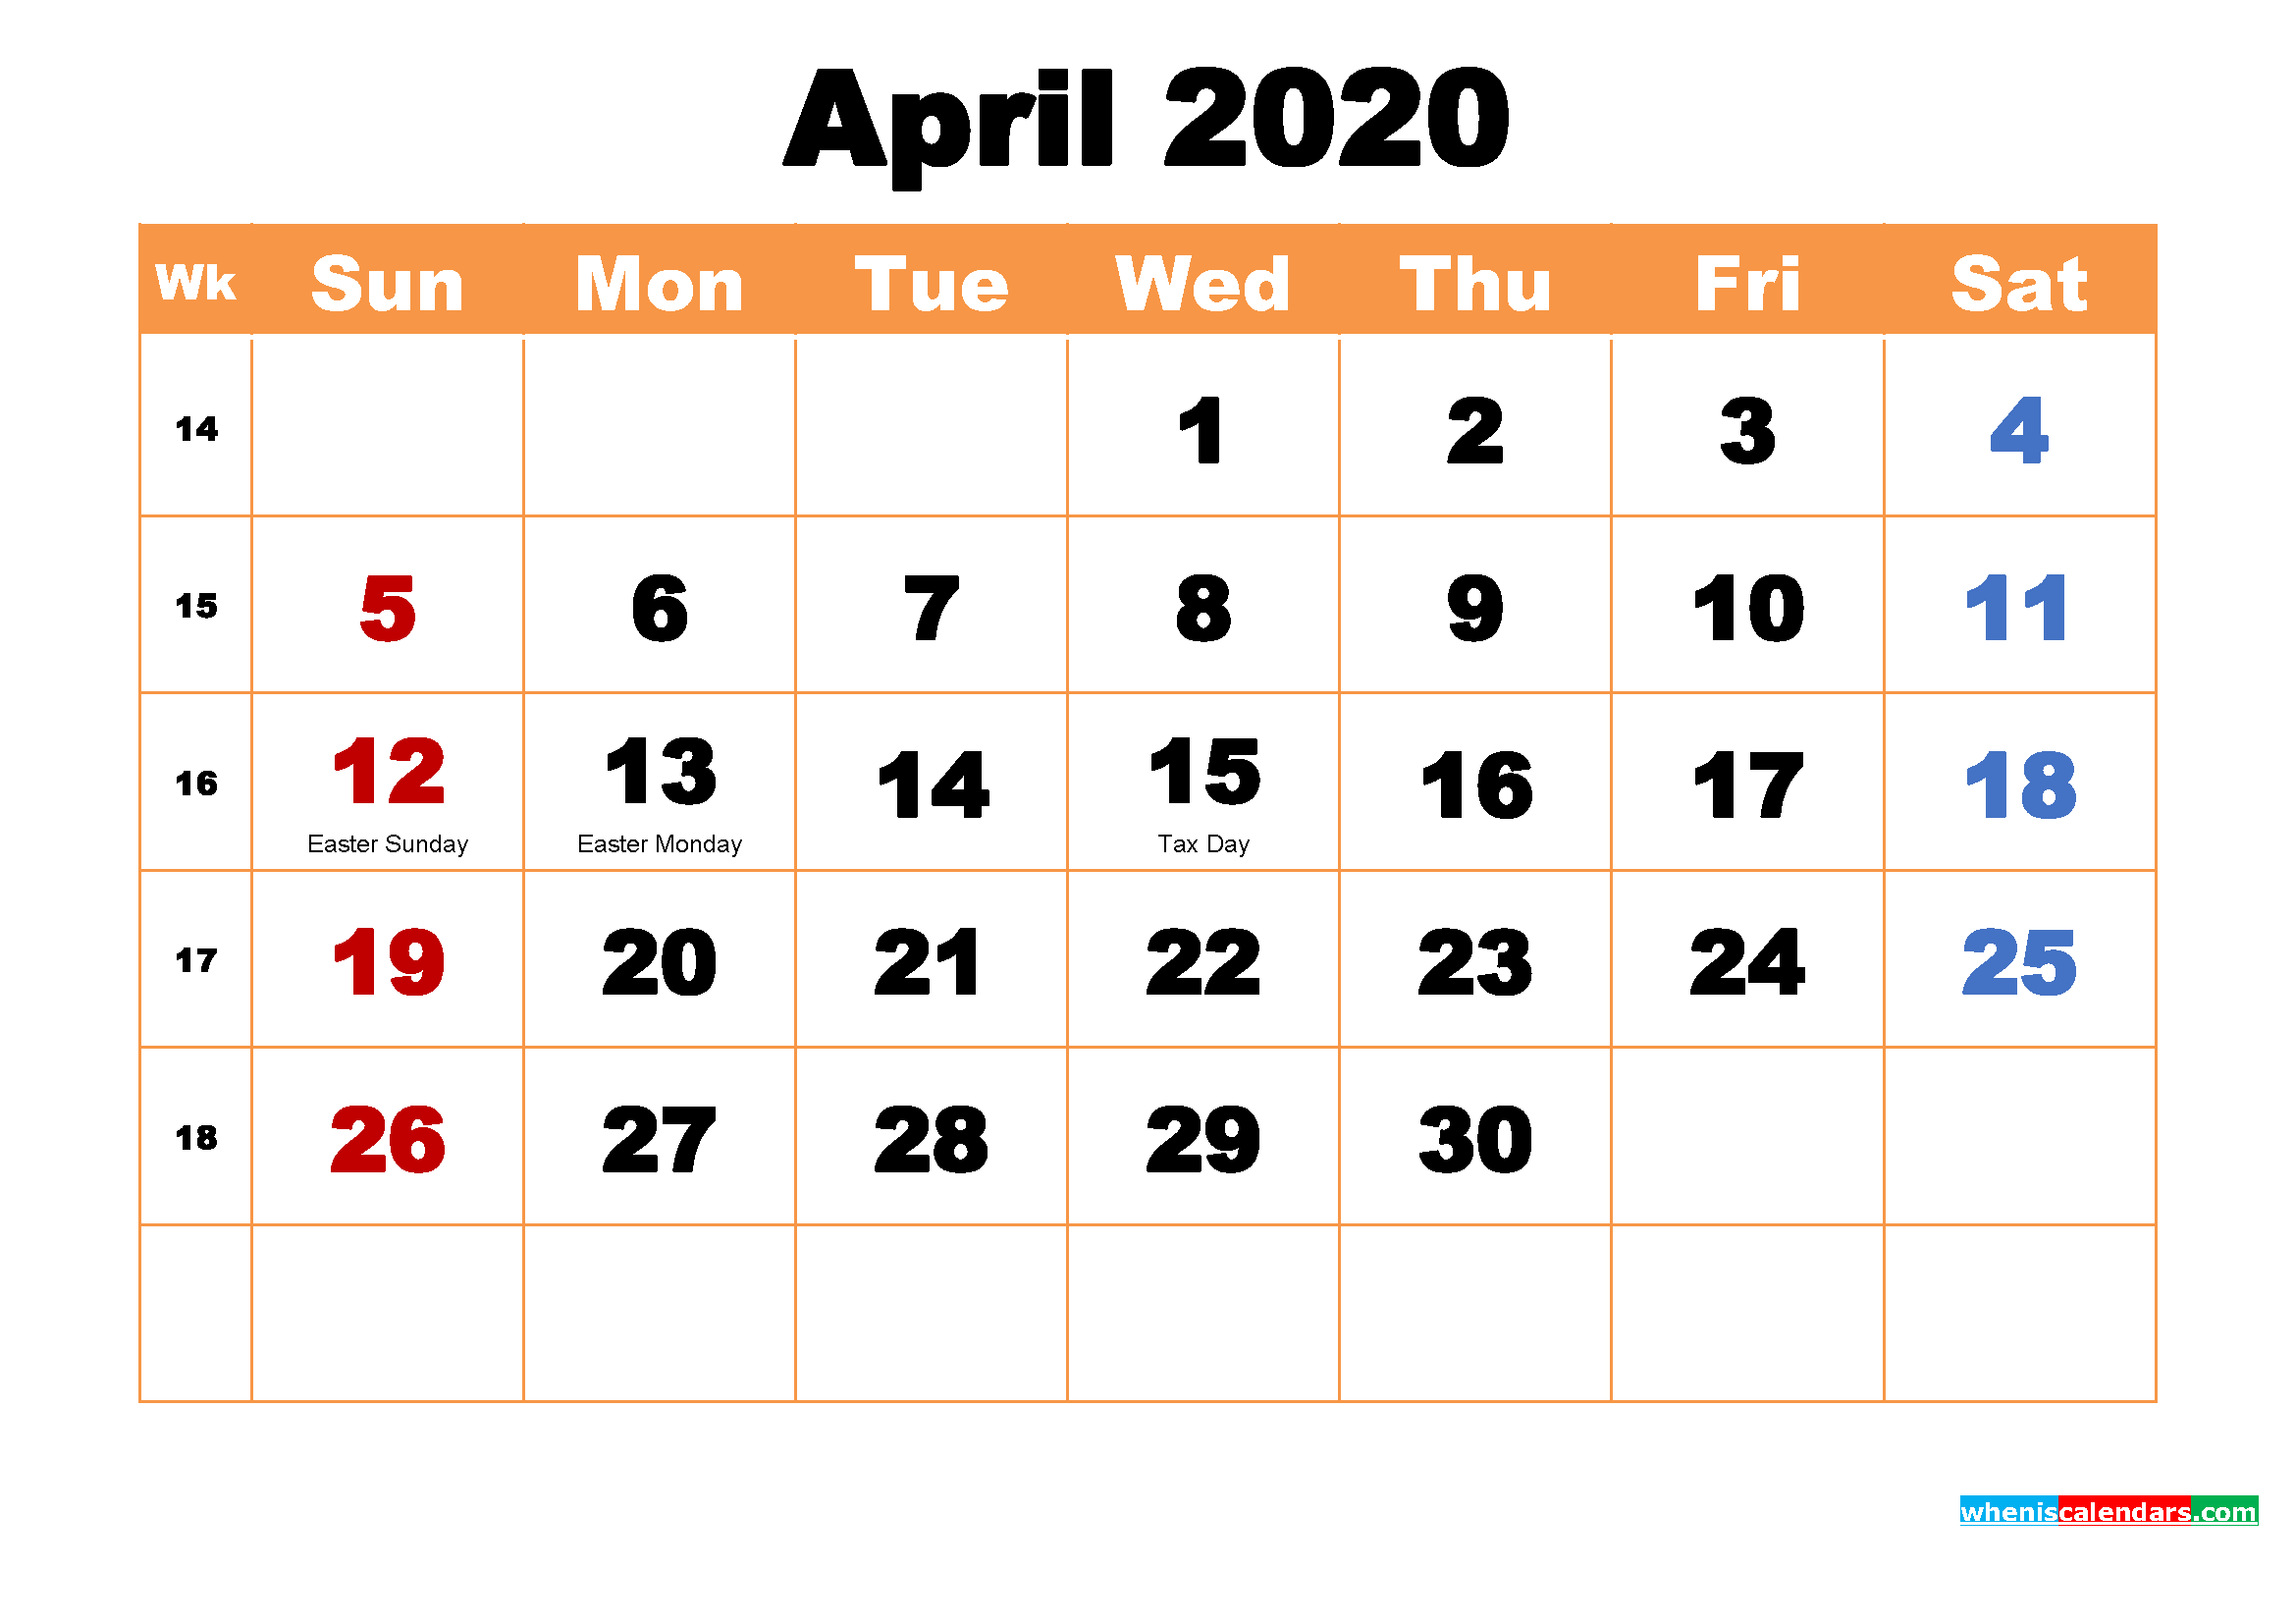 Printable Calendar for April 2020